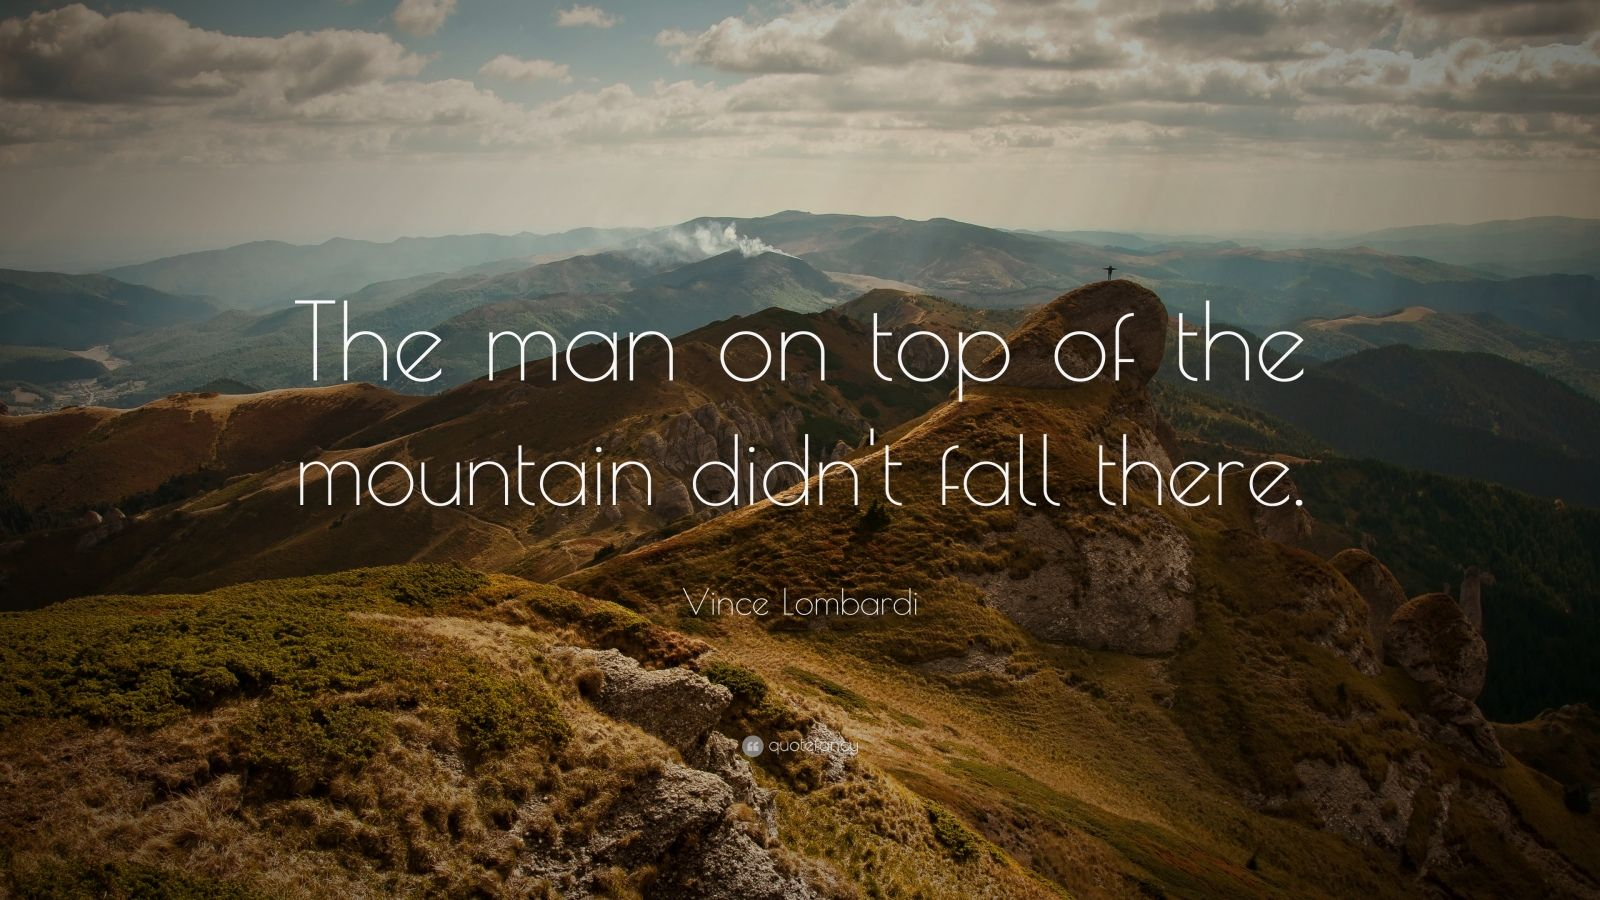 Reading Quotes Wallpaper Vince Lombardi Quote The Man On Top Of The Mountain Didn